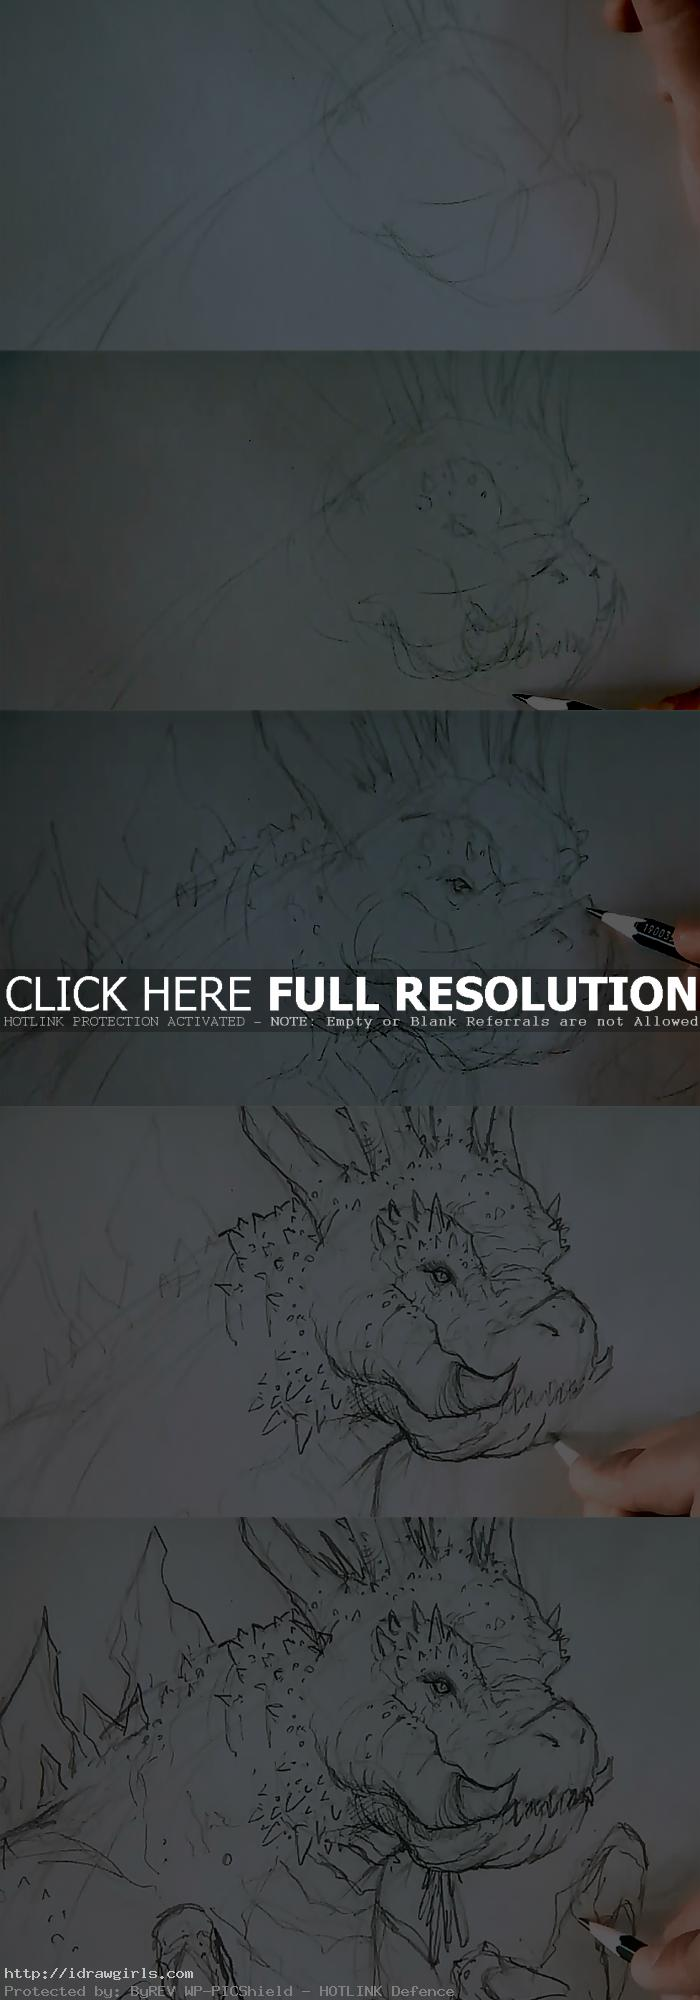 how to draw Kaiju creature design